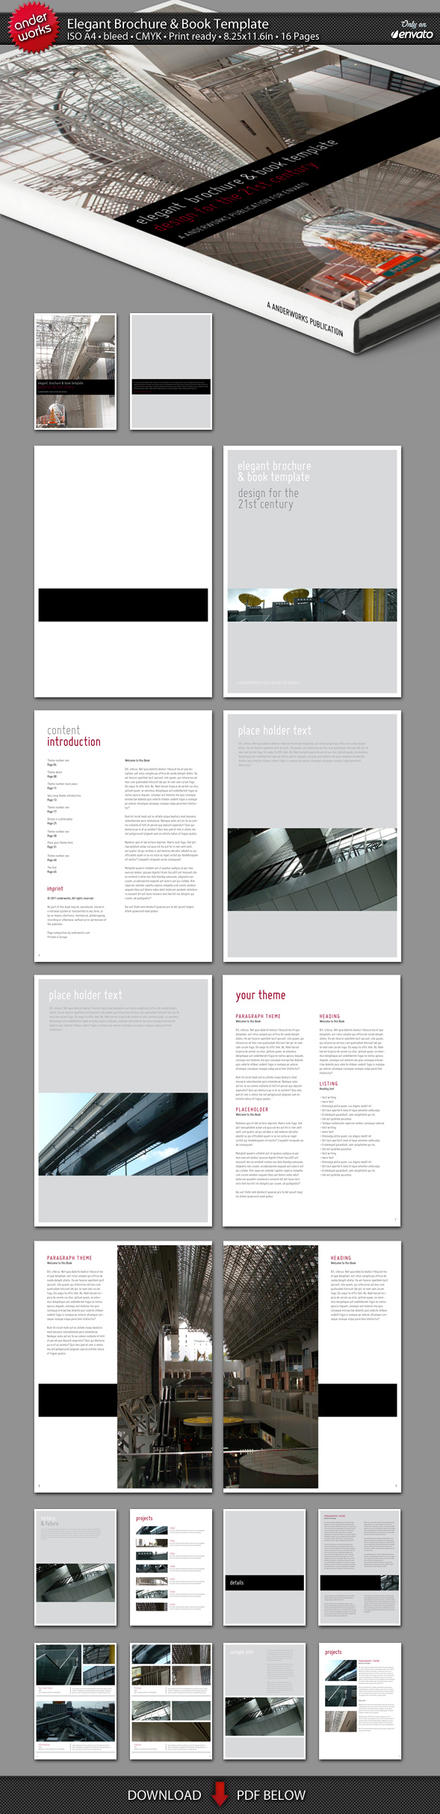 Elegant brochure book template by isoarts2 on deviantart for Elegant brochure templates